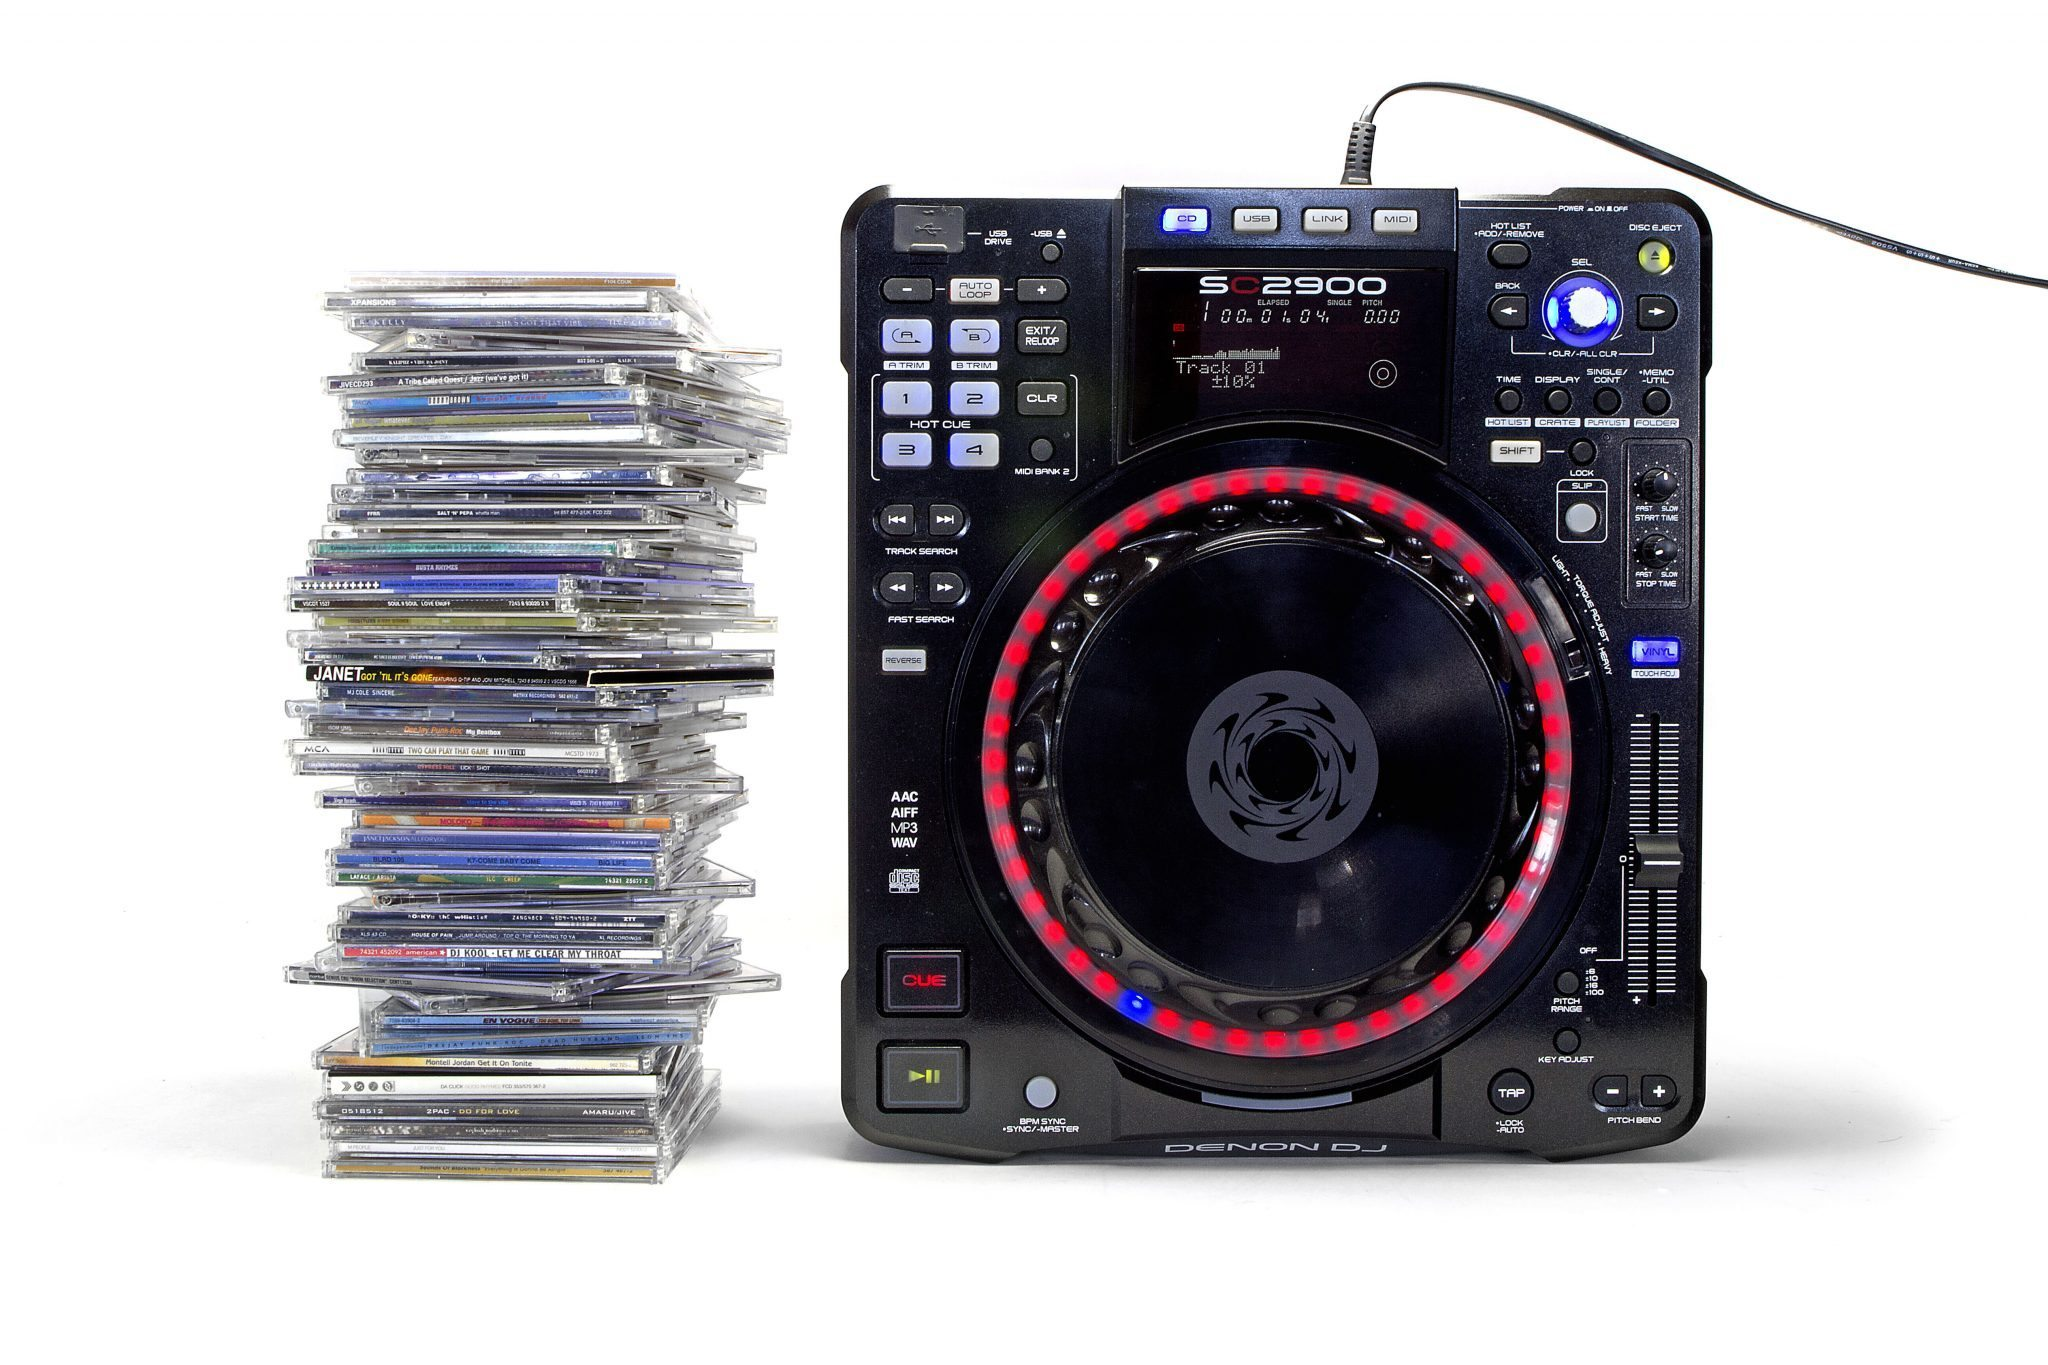 CDs — are they really dead to DJs